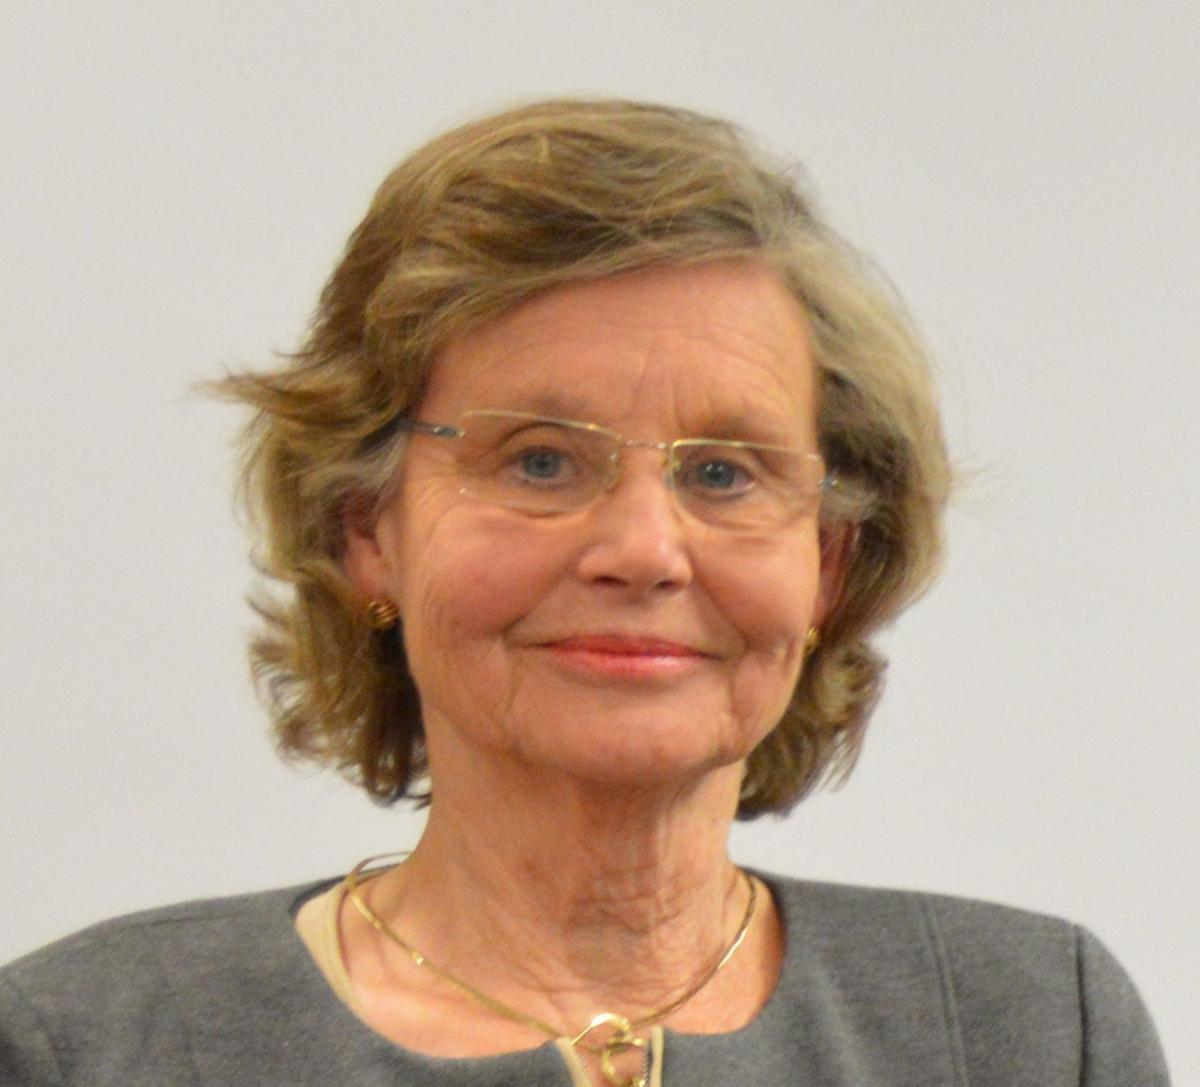 County Council to recognize former Greenbelt chair Maybank